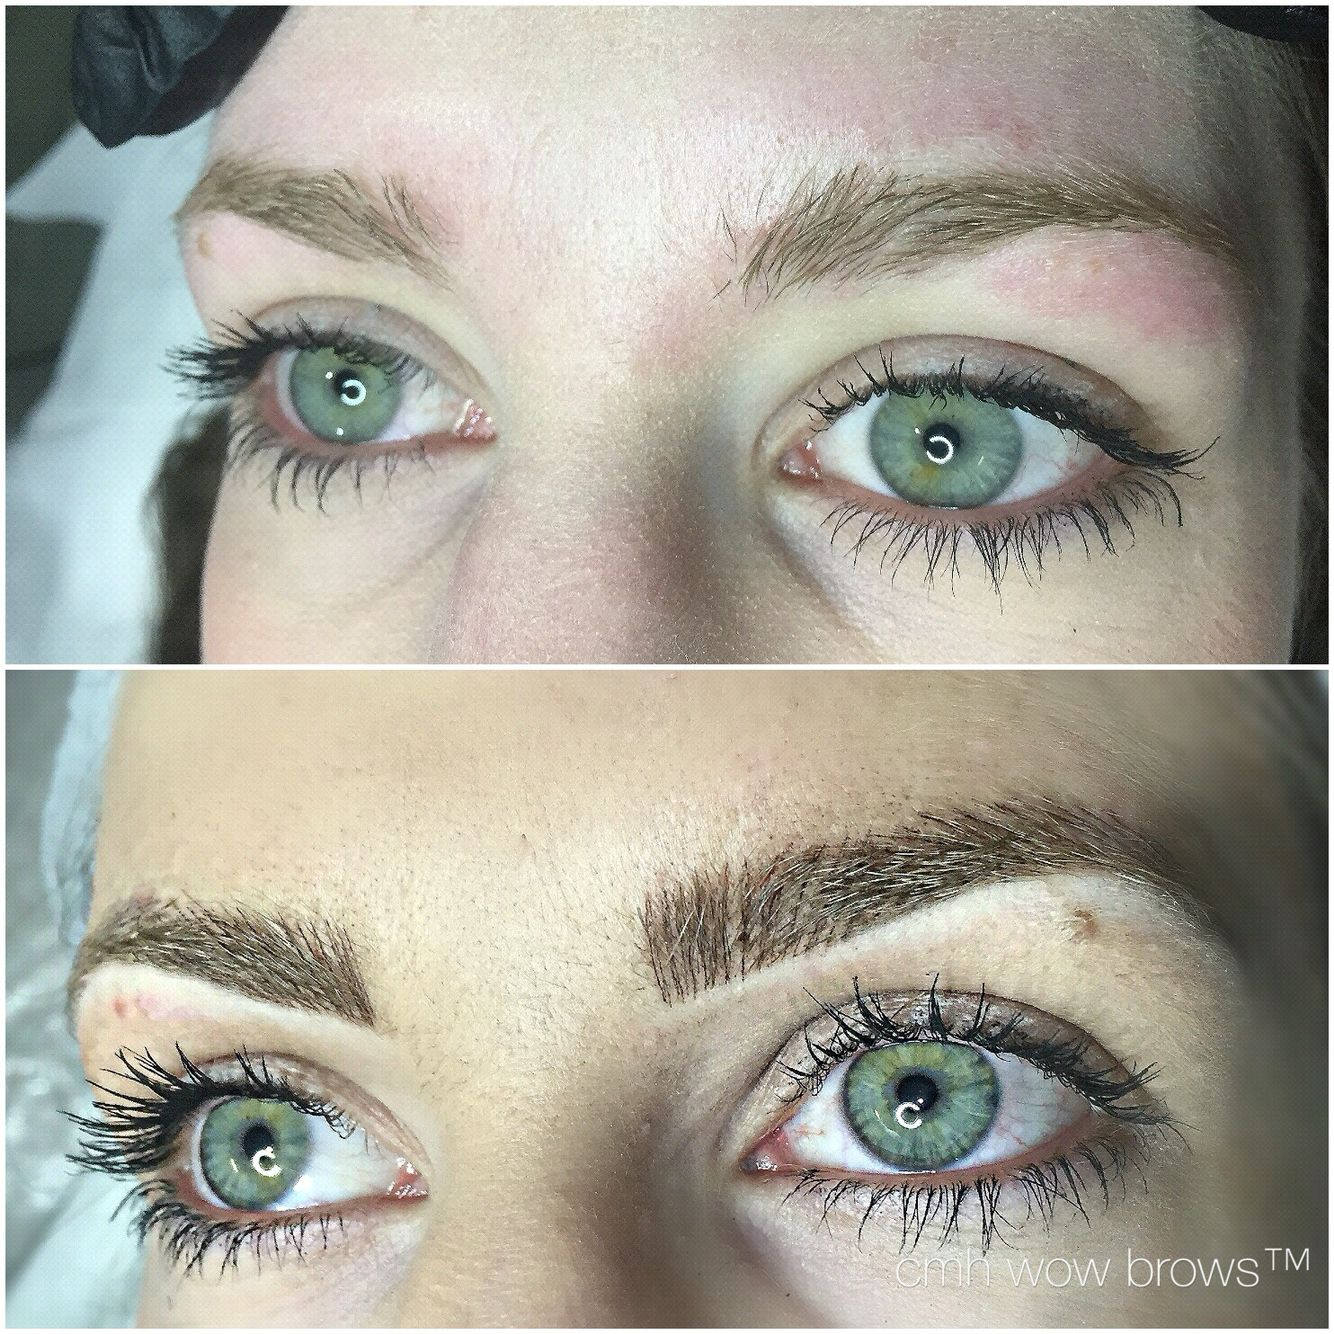 Microblading 3d Hair Strokes: Natural Eyebrow Tattooing Hair Stro…